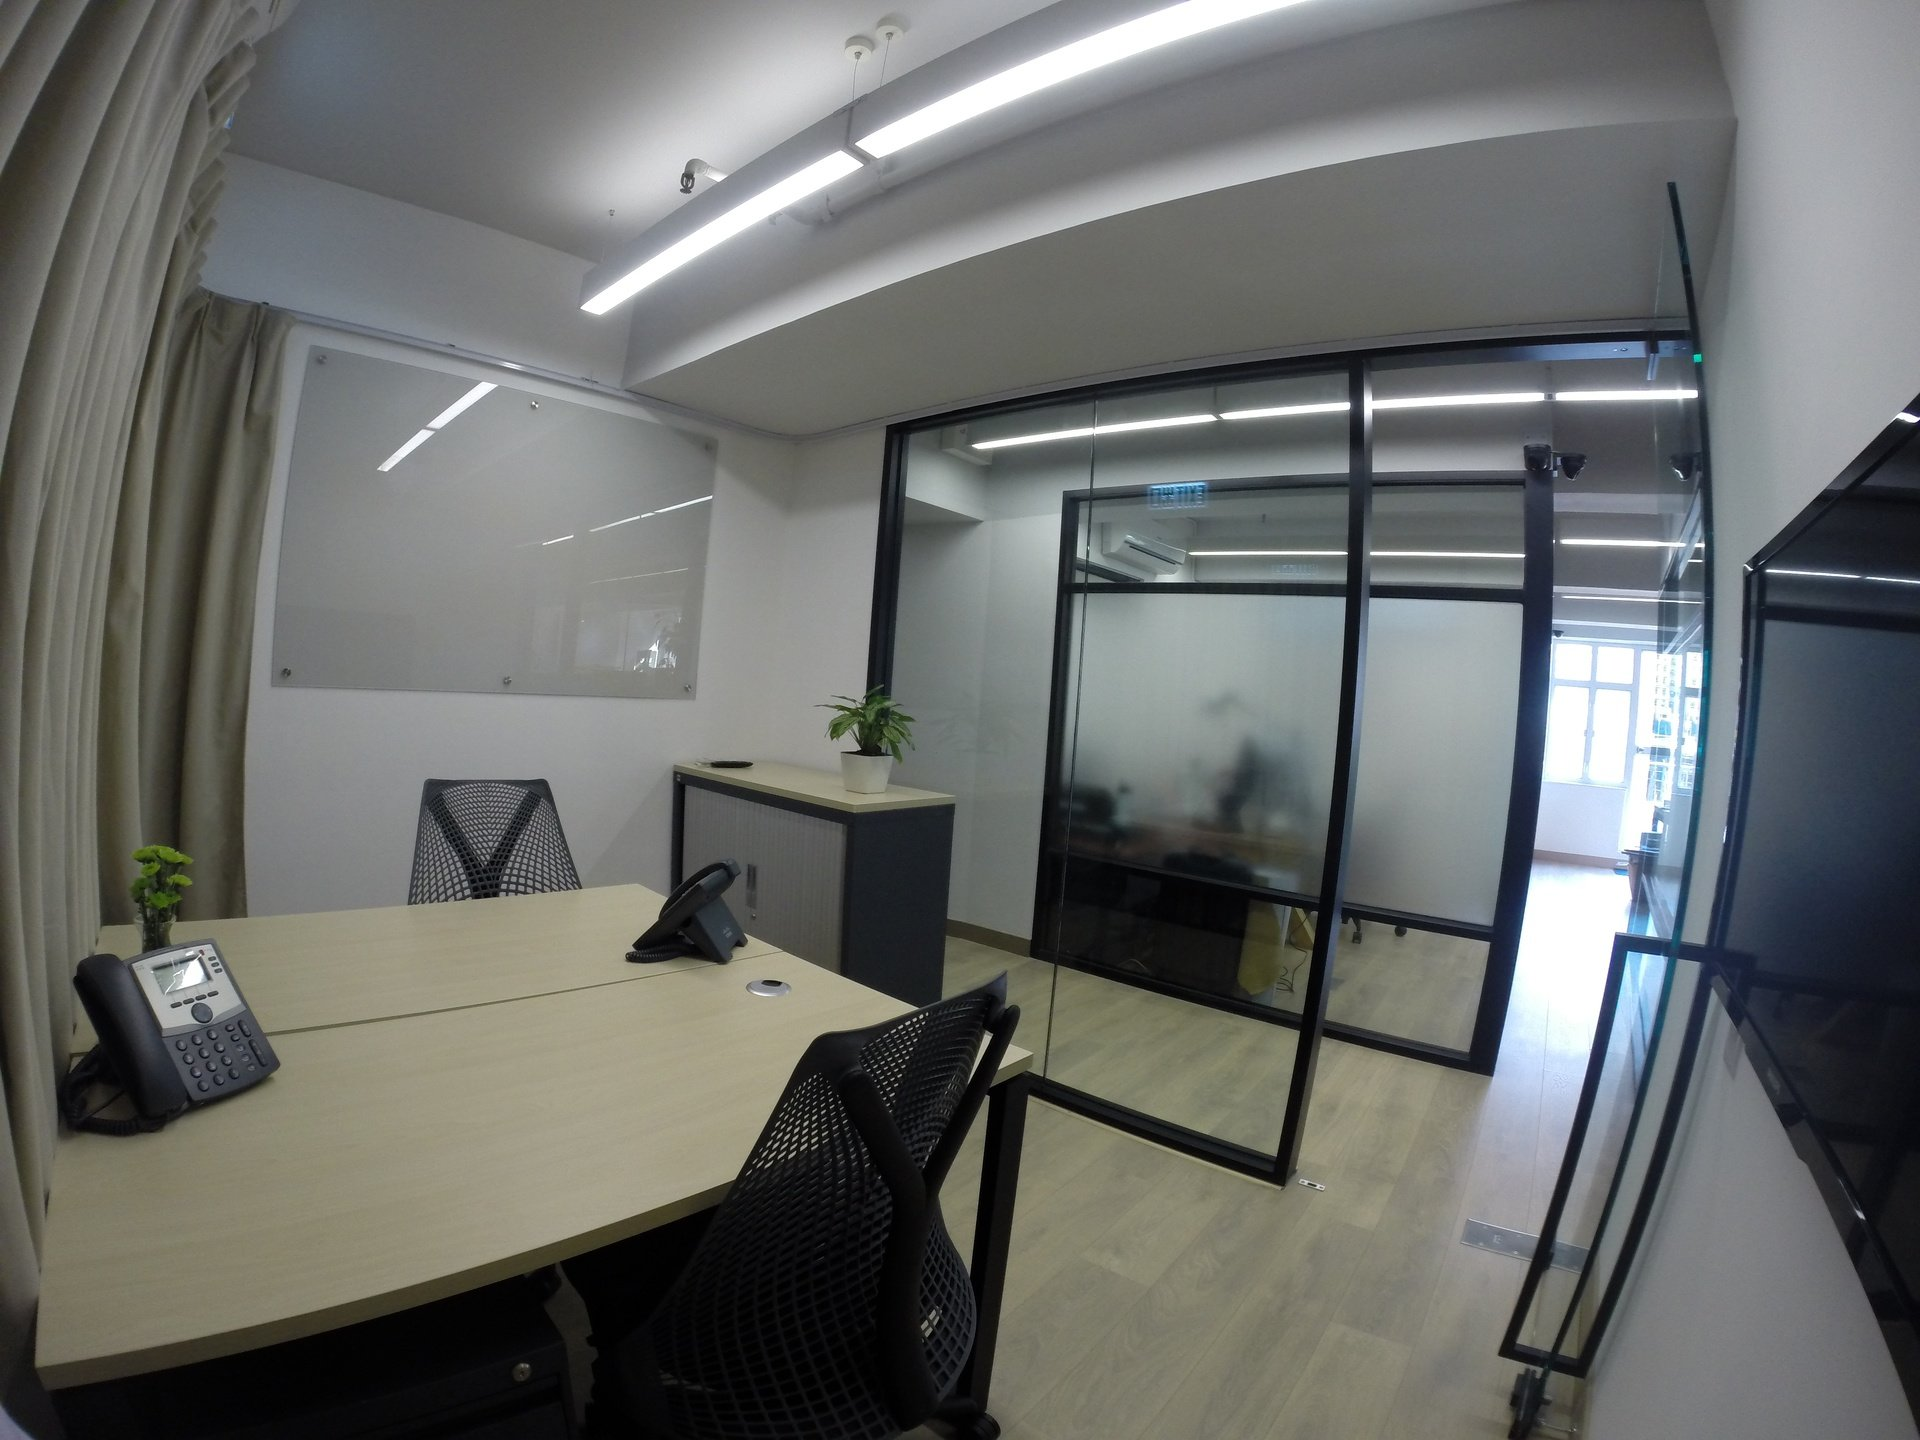 Hong Kong conference rooms Meetingraum Wynd Co-Working Space - Private Office for 2 image 0